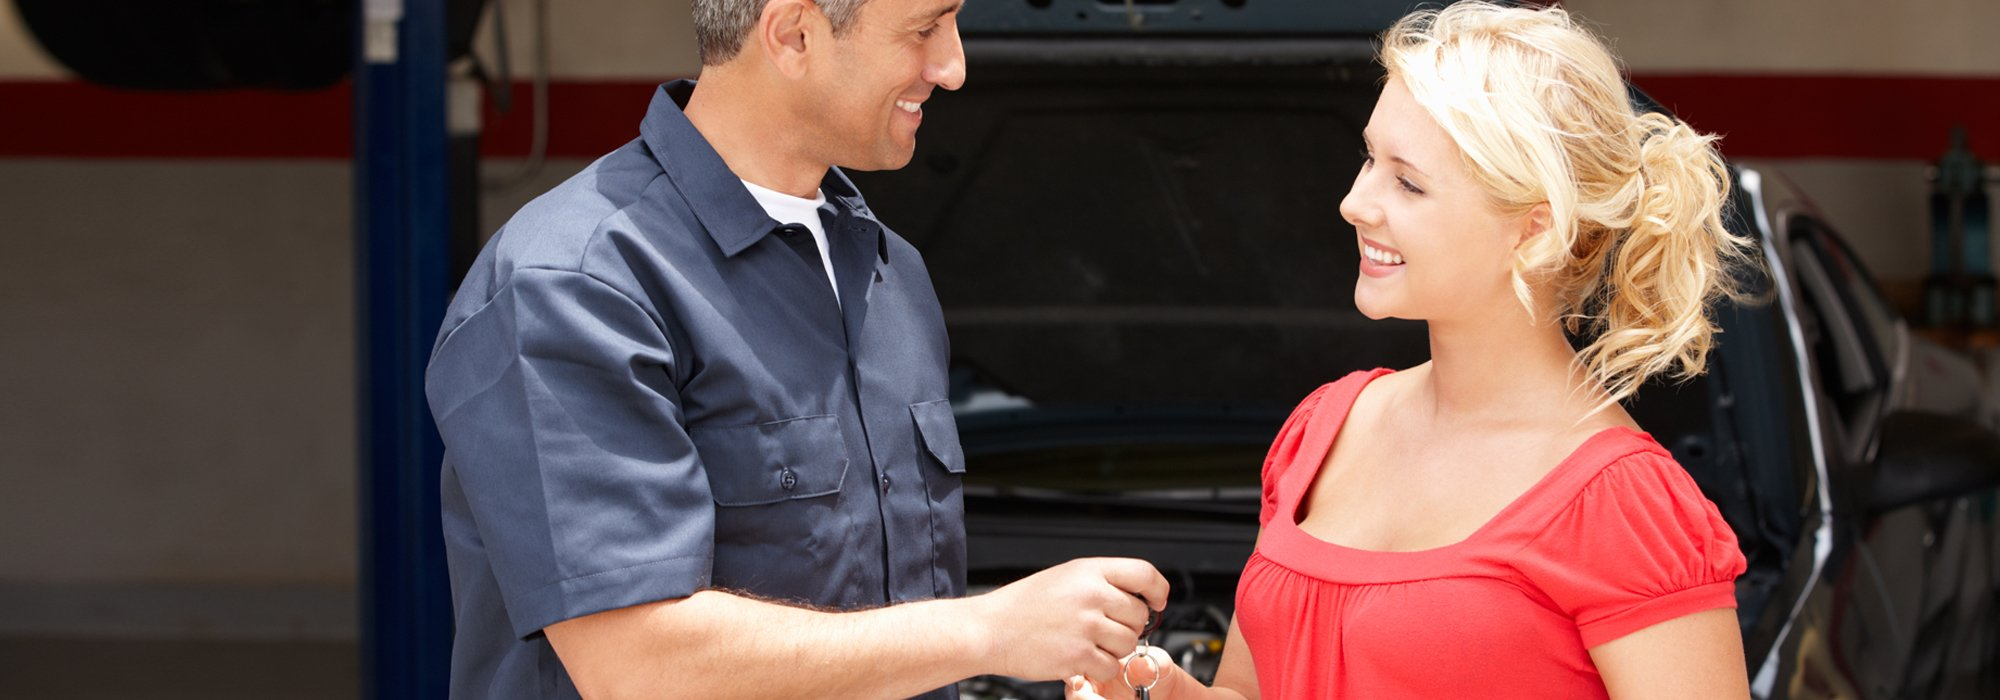 Auto mechanic handling over the keys of car to the client